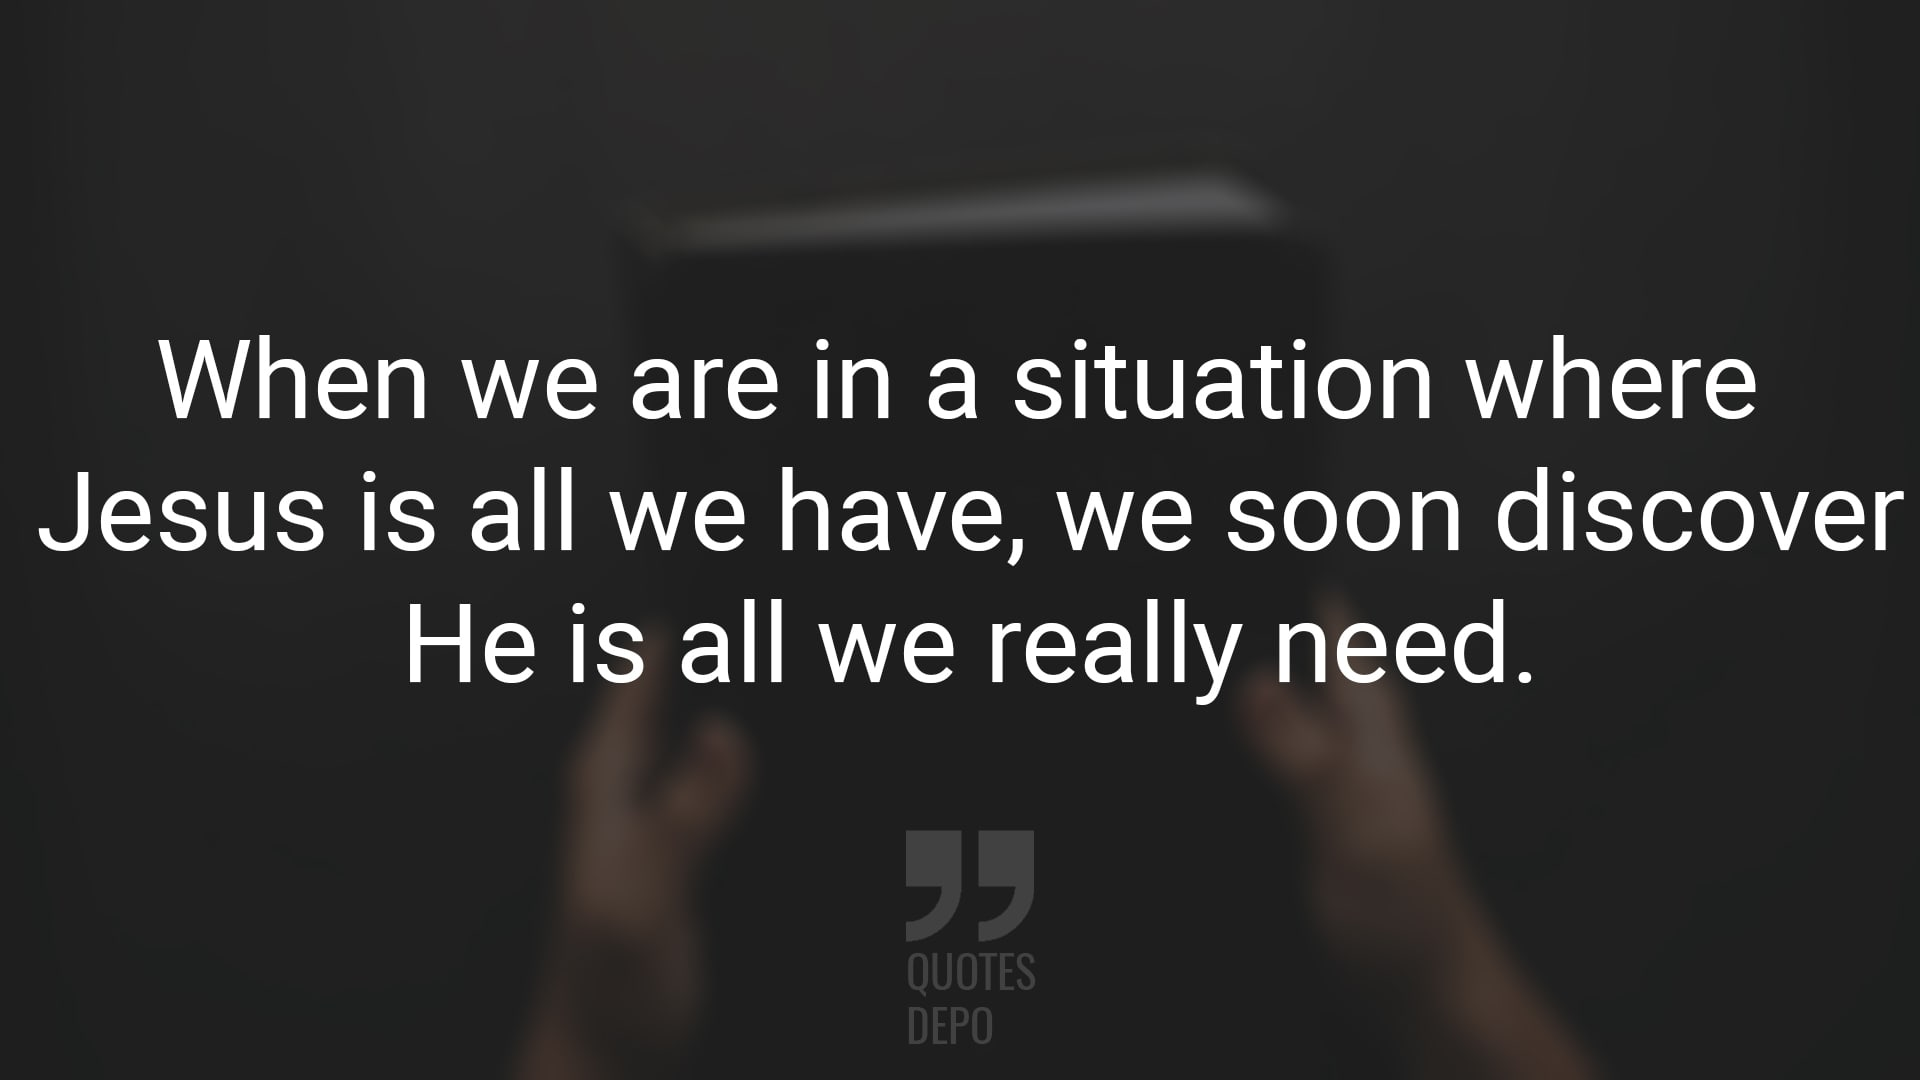 When We are in a Situation Where Jesus is All We Have